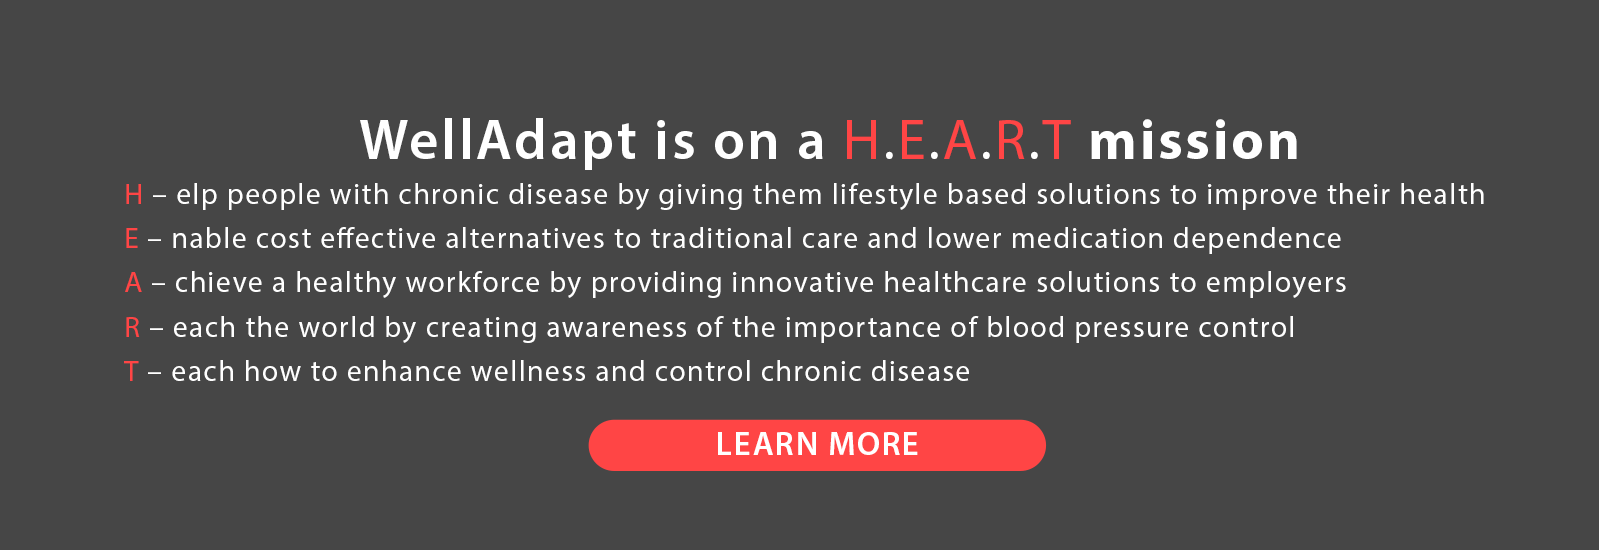 WellAdapt Heart Mission